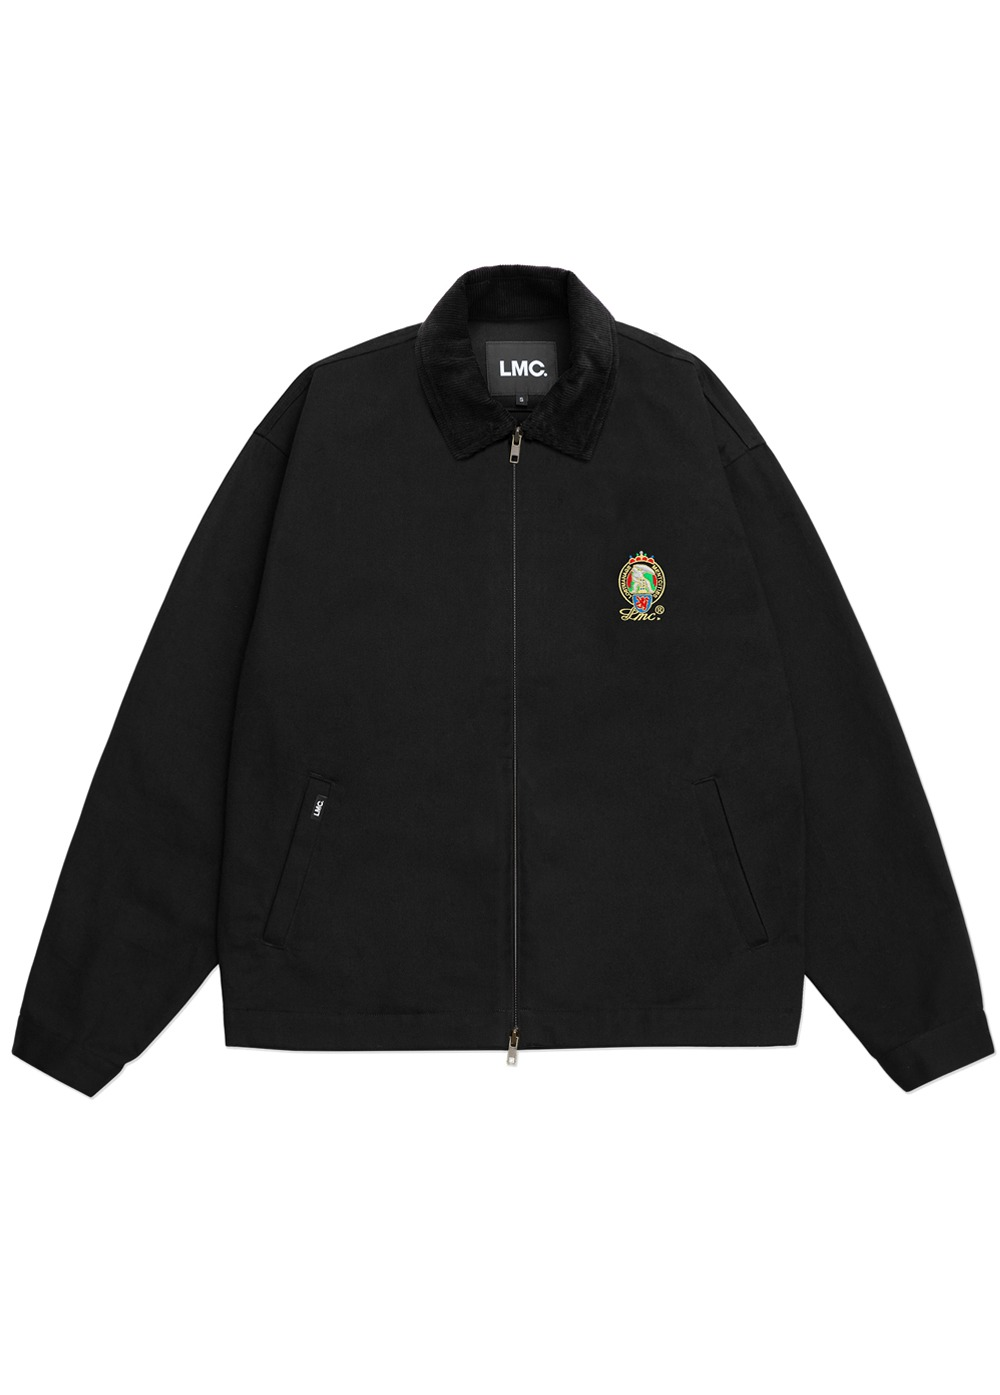 LMC DEFENSE WORK JACKET black